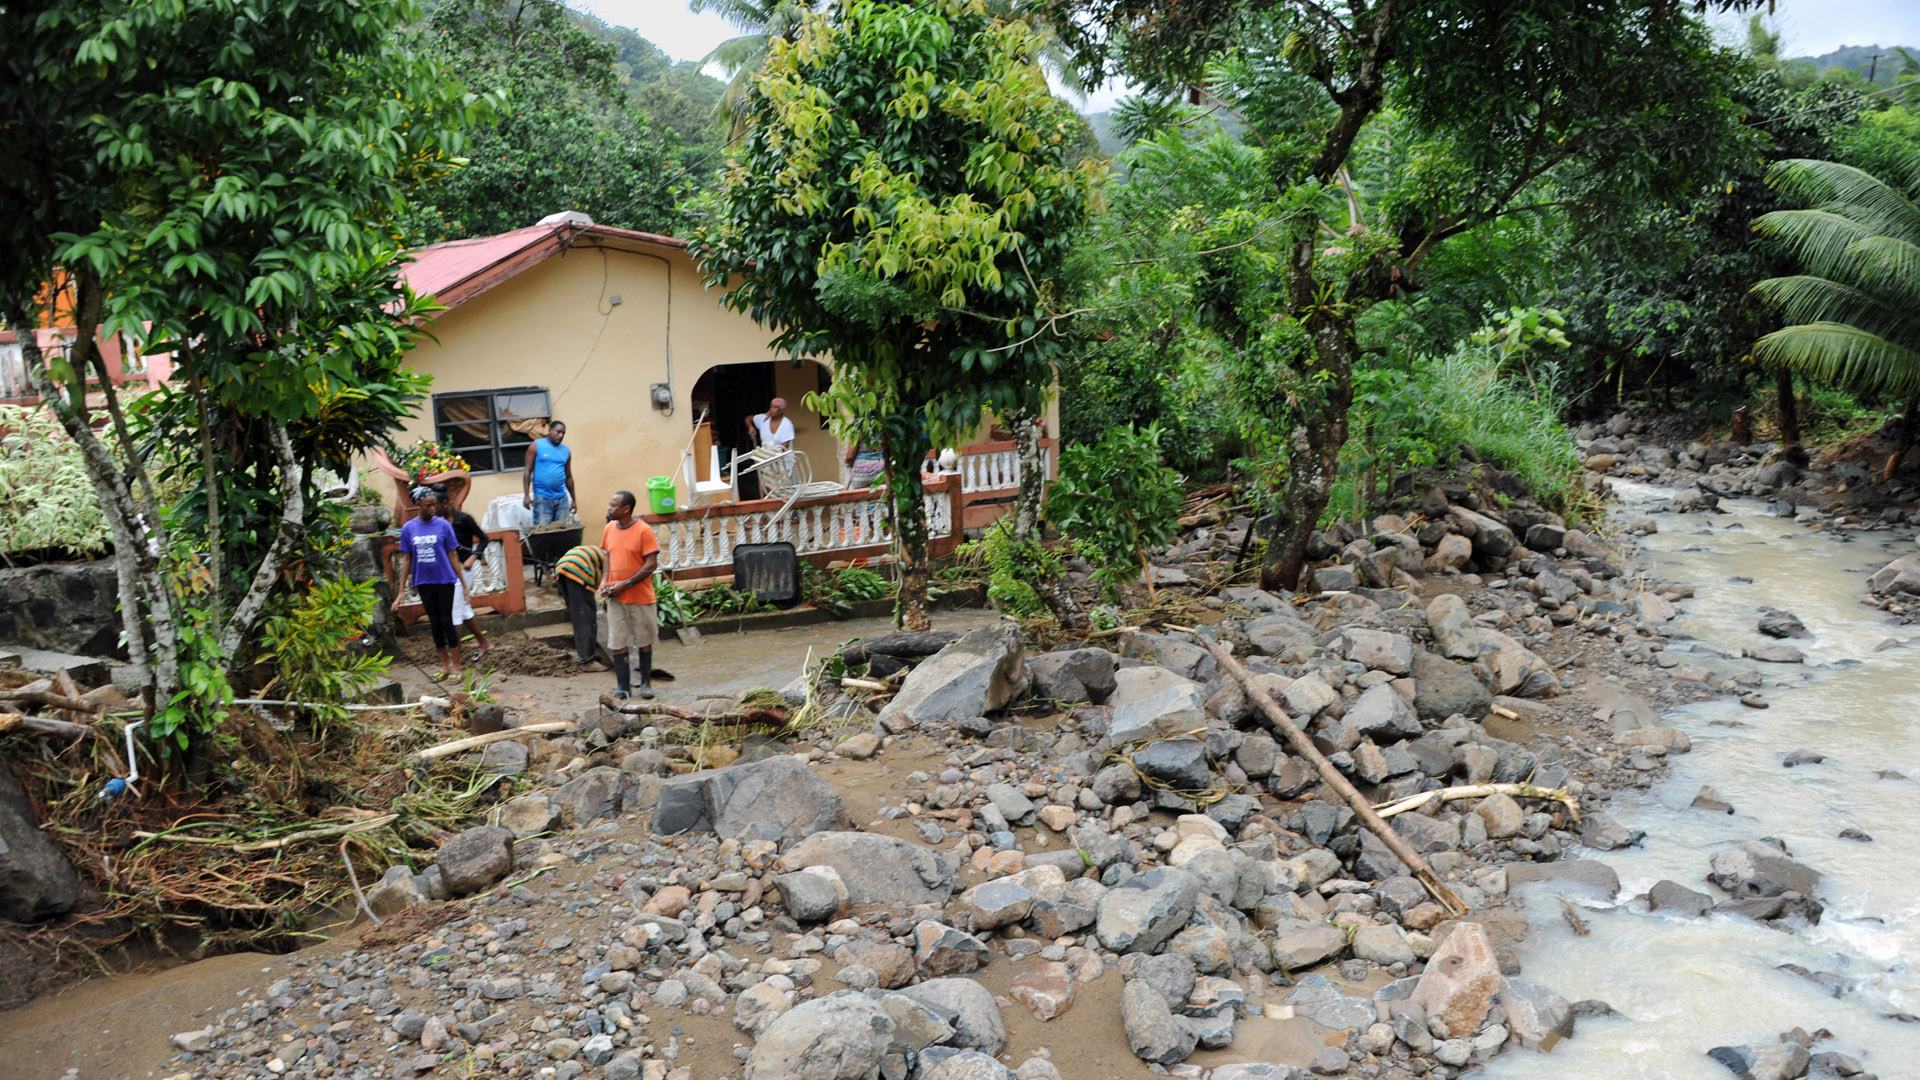 Storm damage on the Caribbean island of St. Lucia